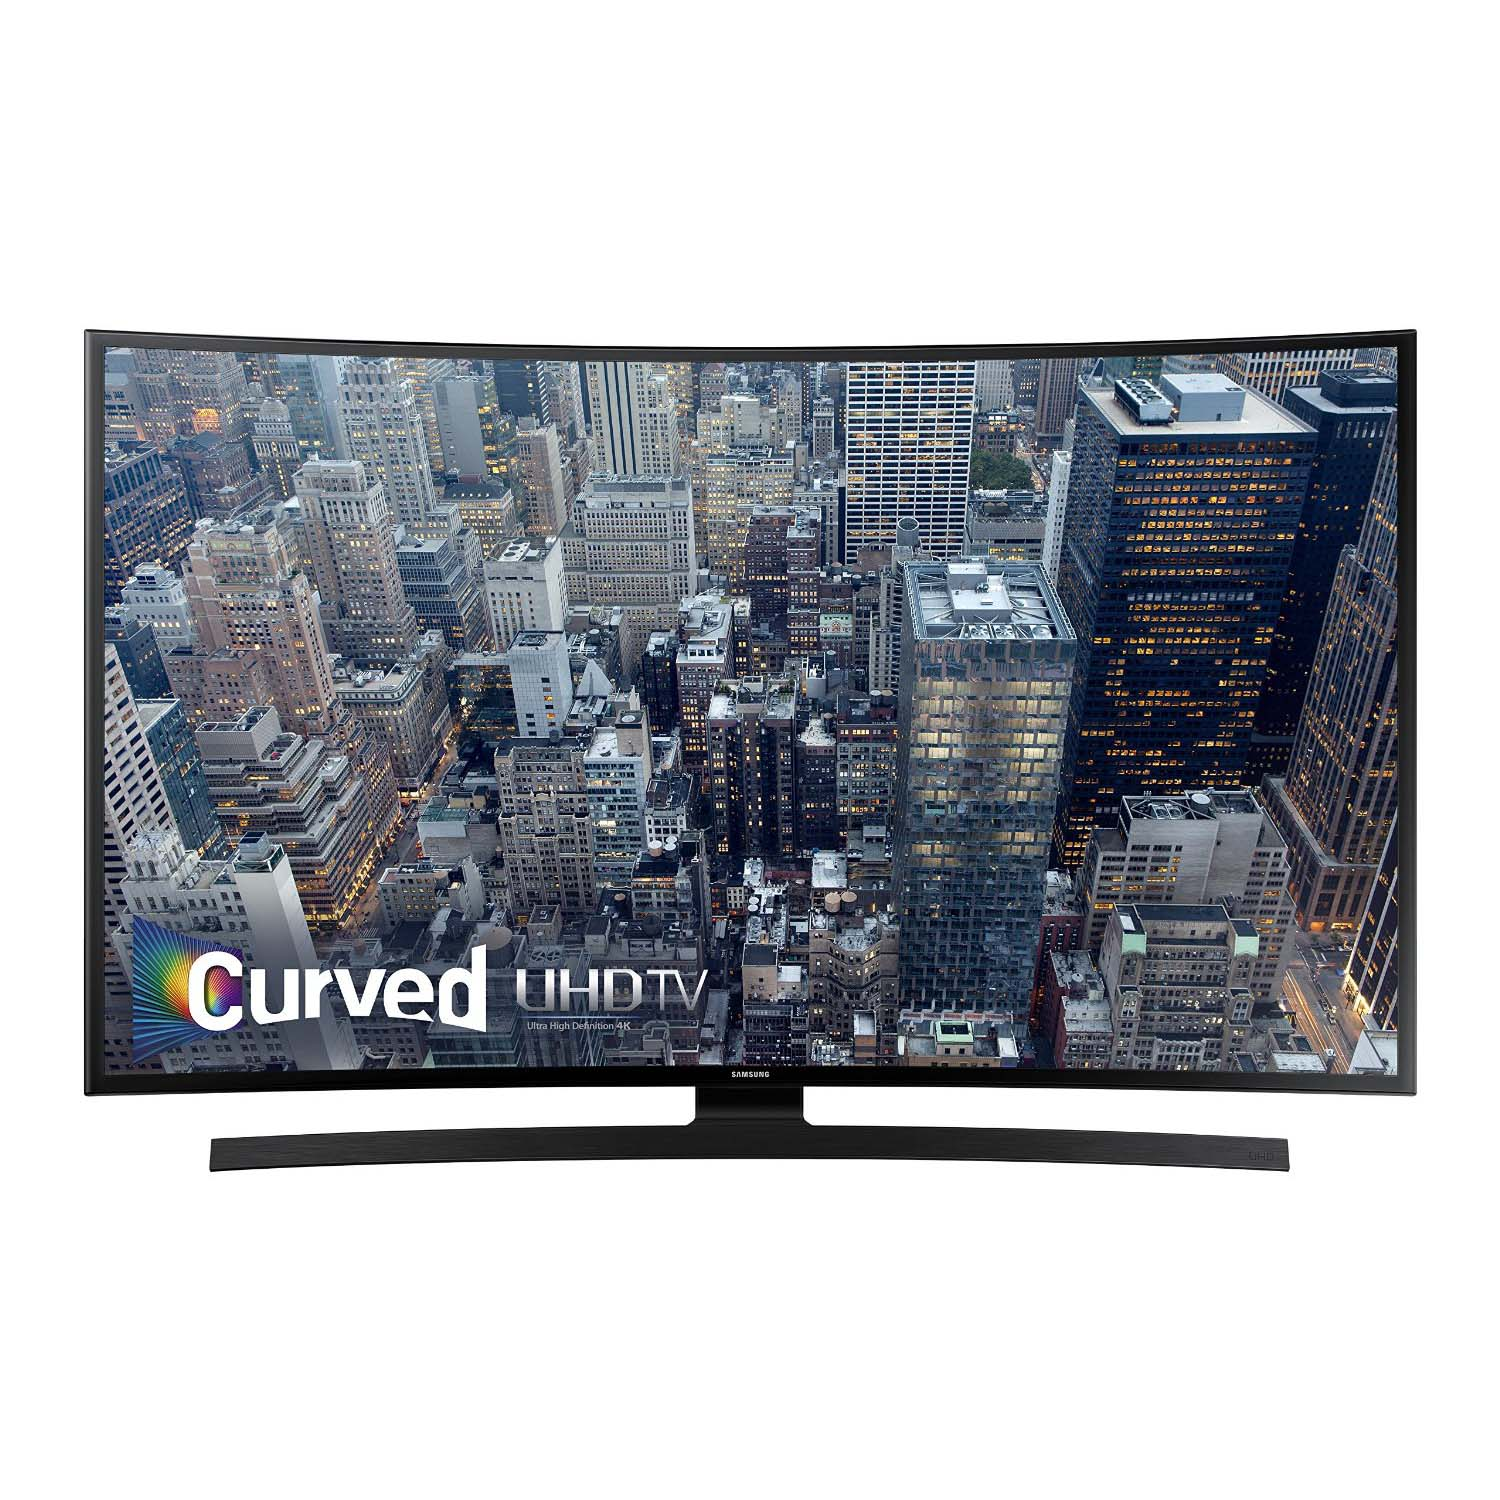 Samsung UN65JU6700 Curved 65-Inch 4K Ultra HD Smart LED TV (2015 Model) *관부가세 별도*